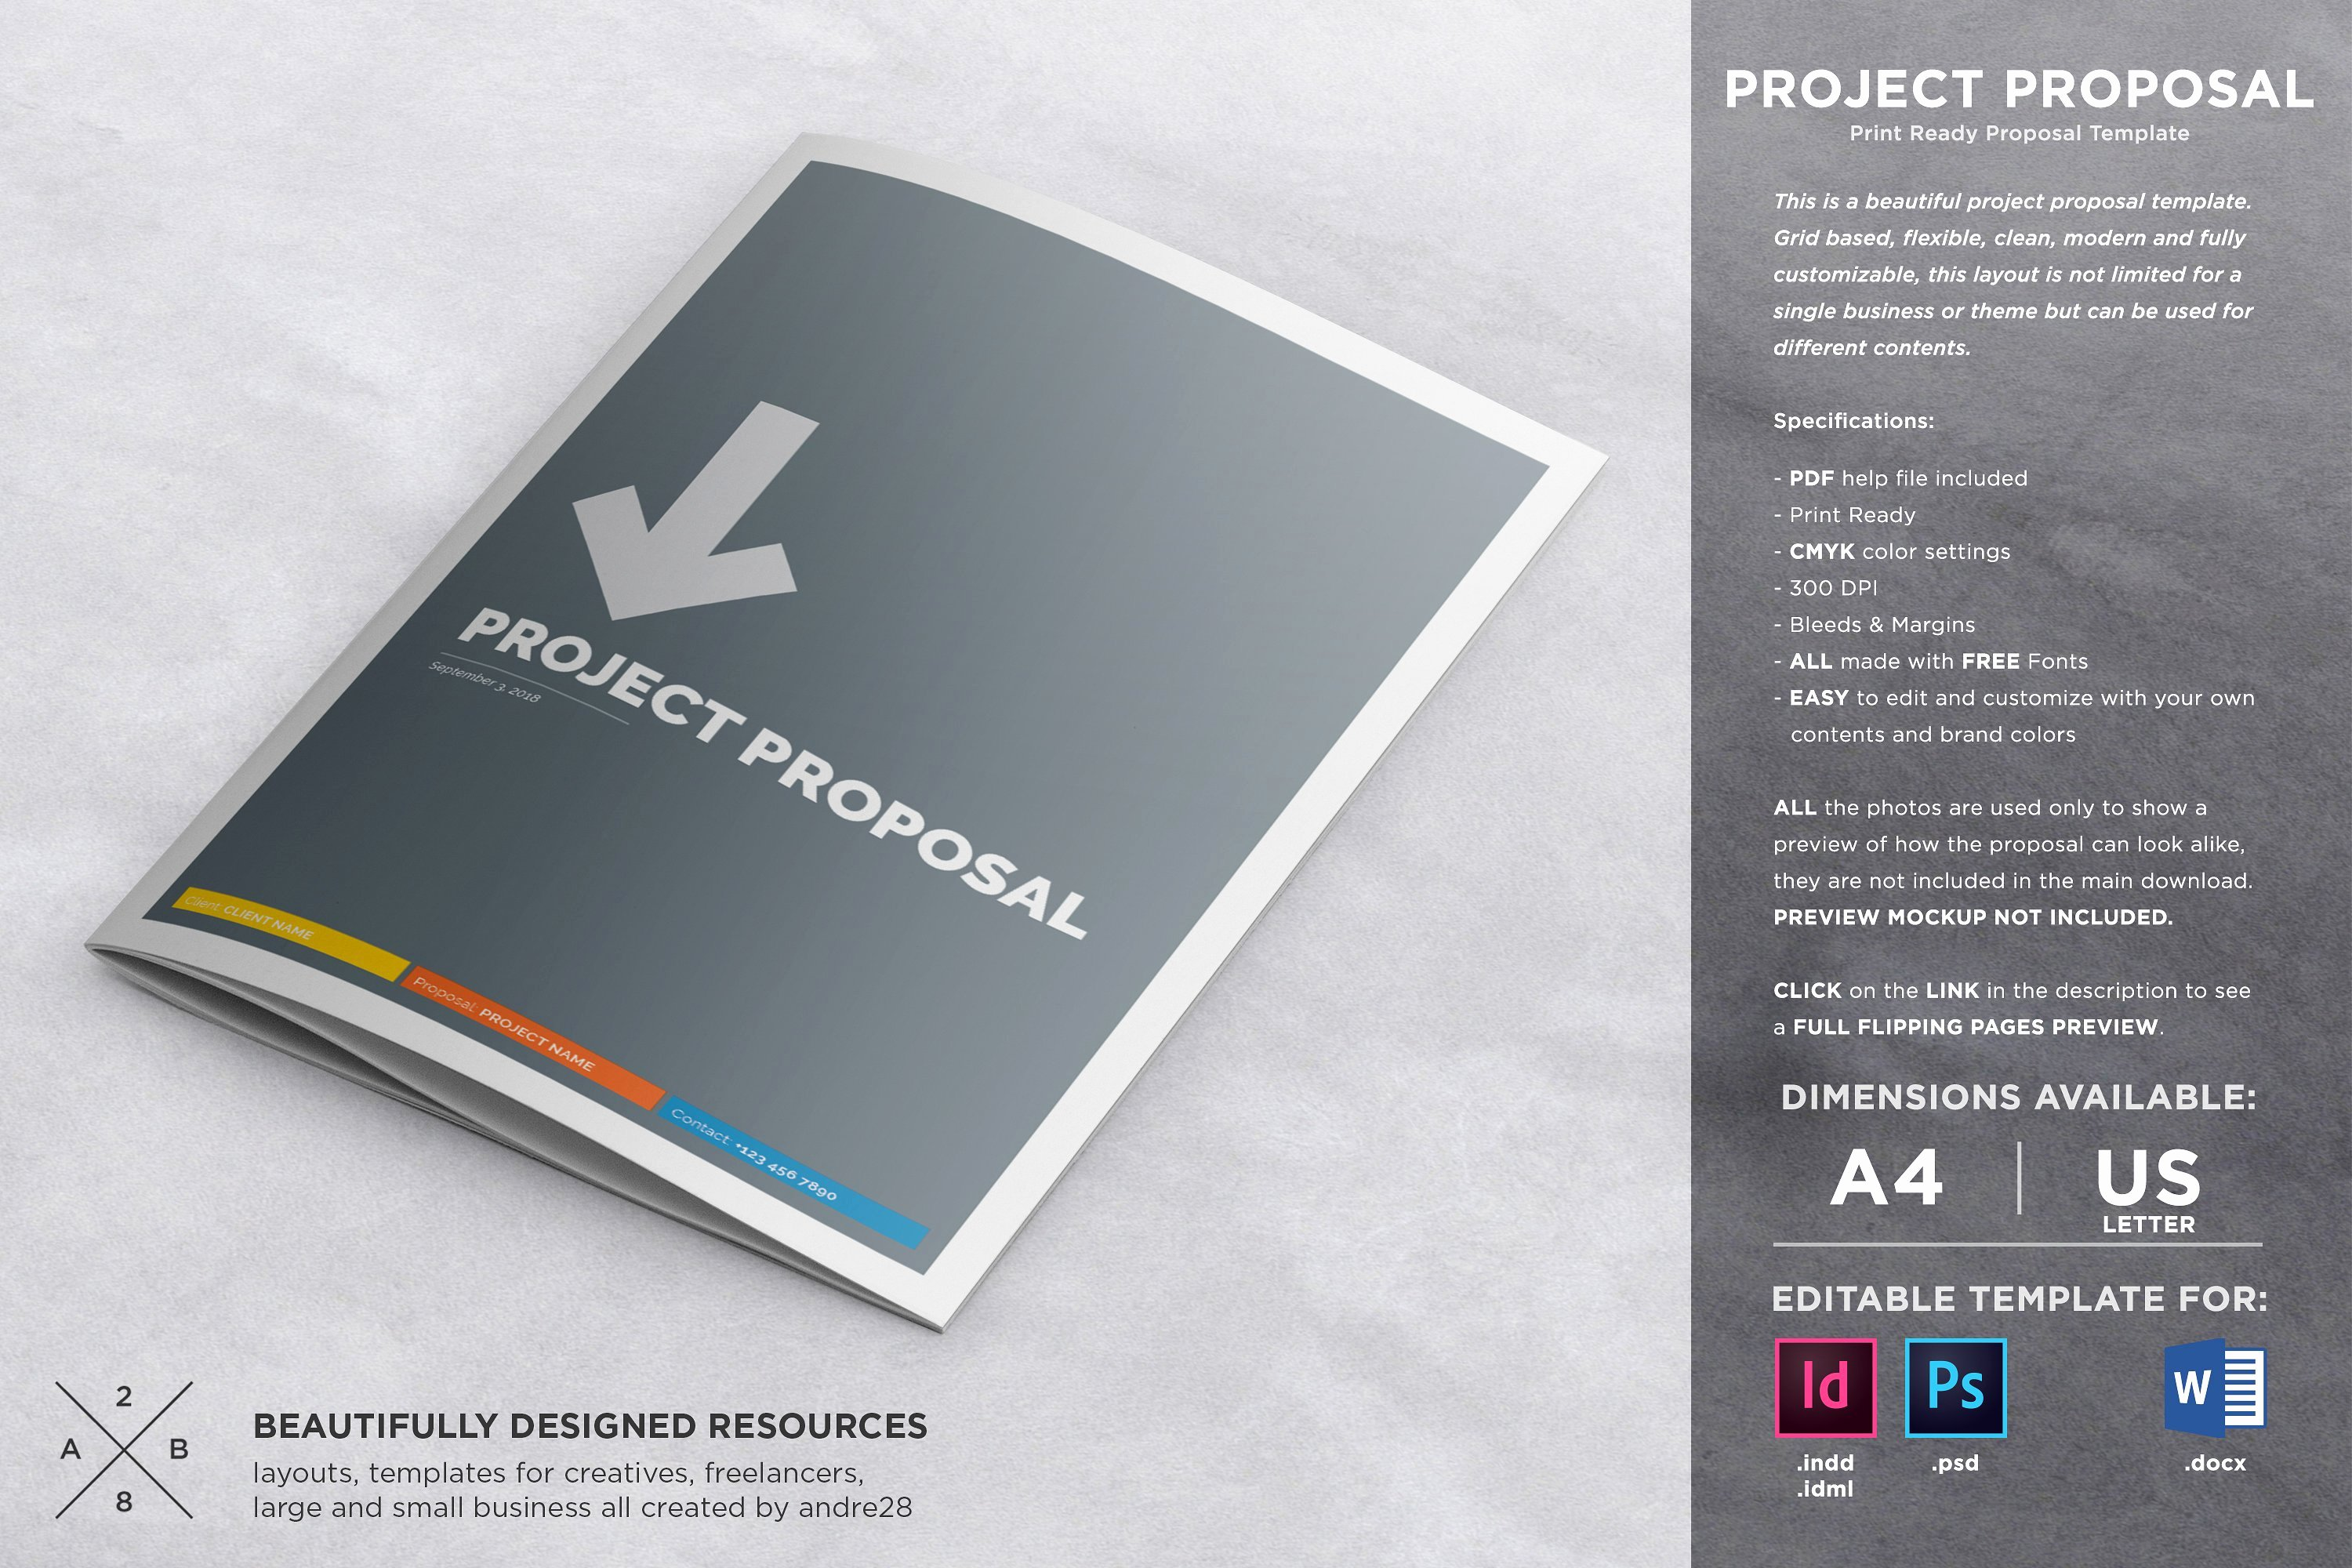 Graphic Design Proposal Template Awesome Proposal Contract & Invoice Brochure Templates